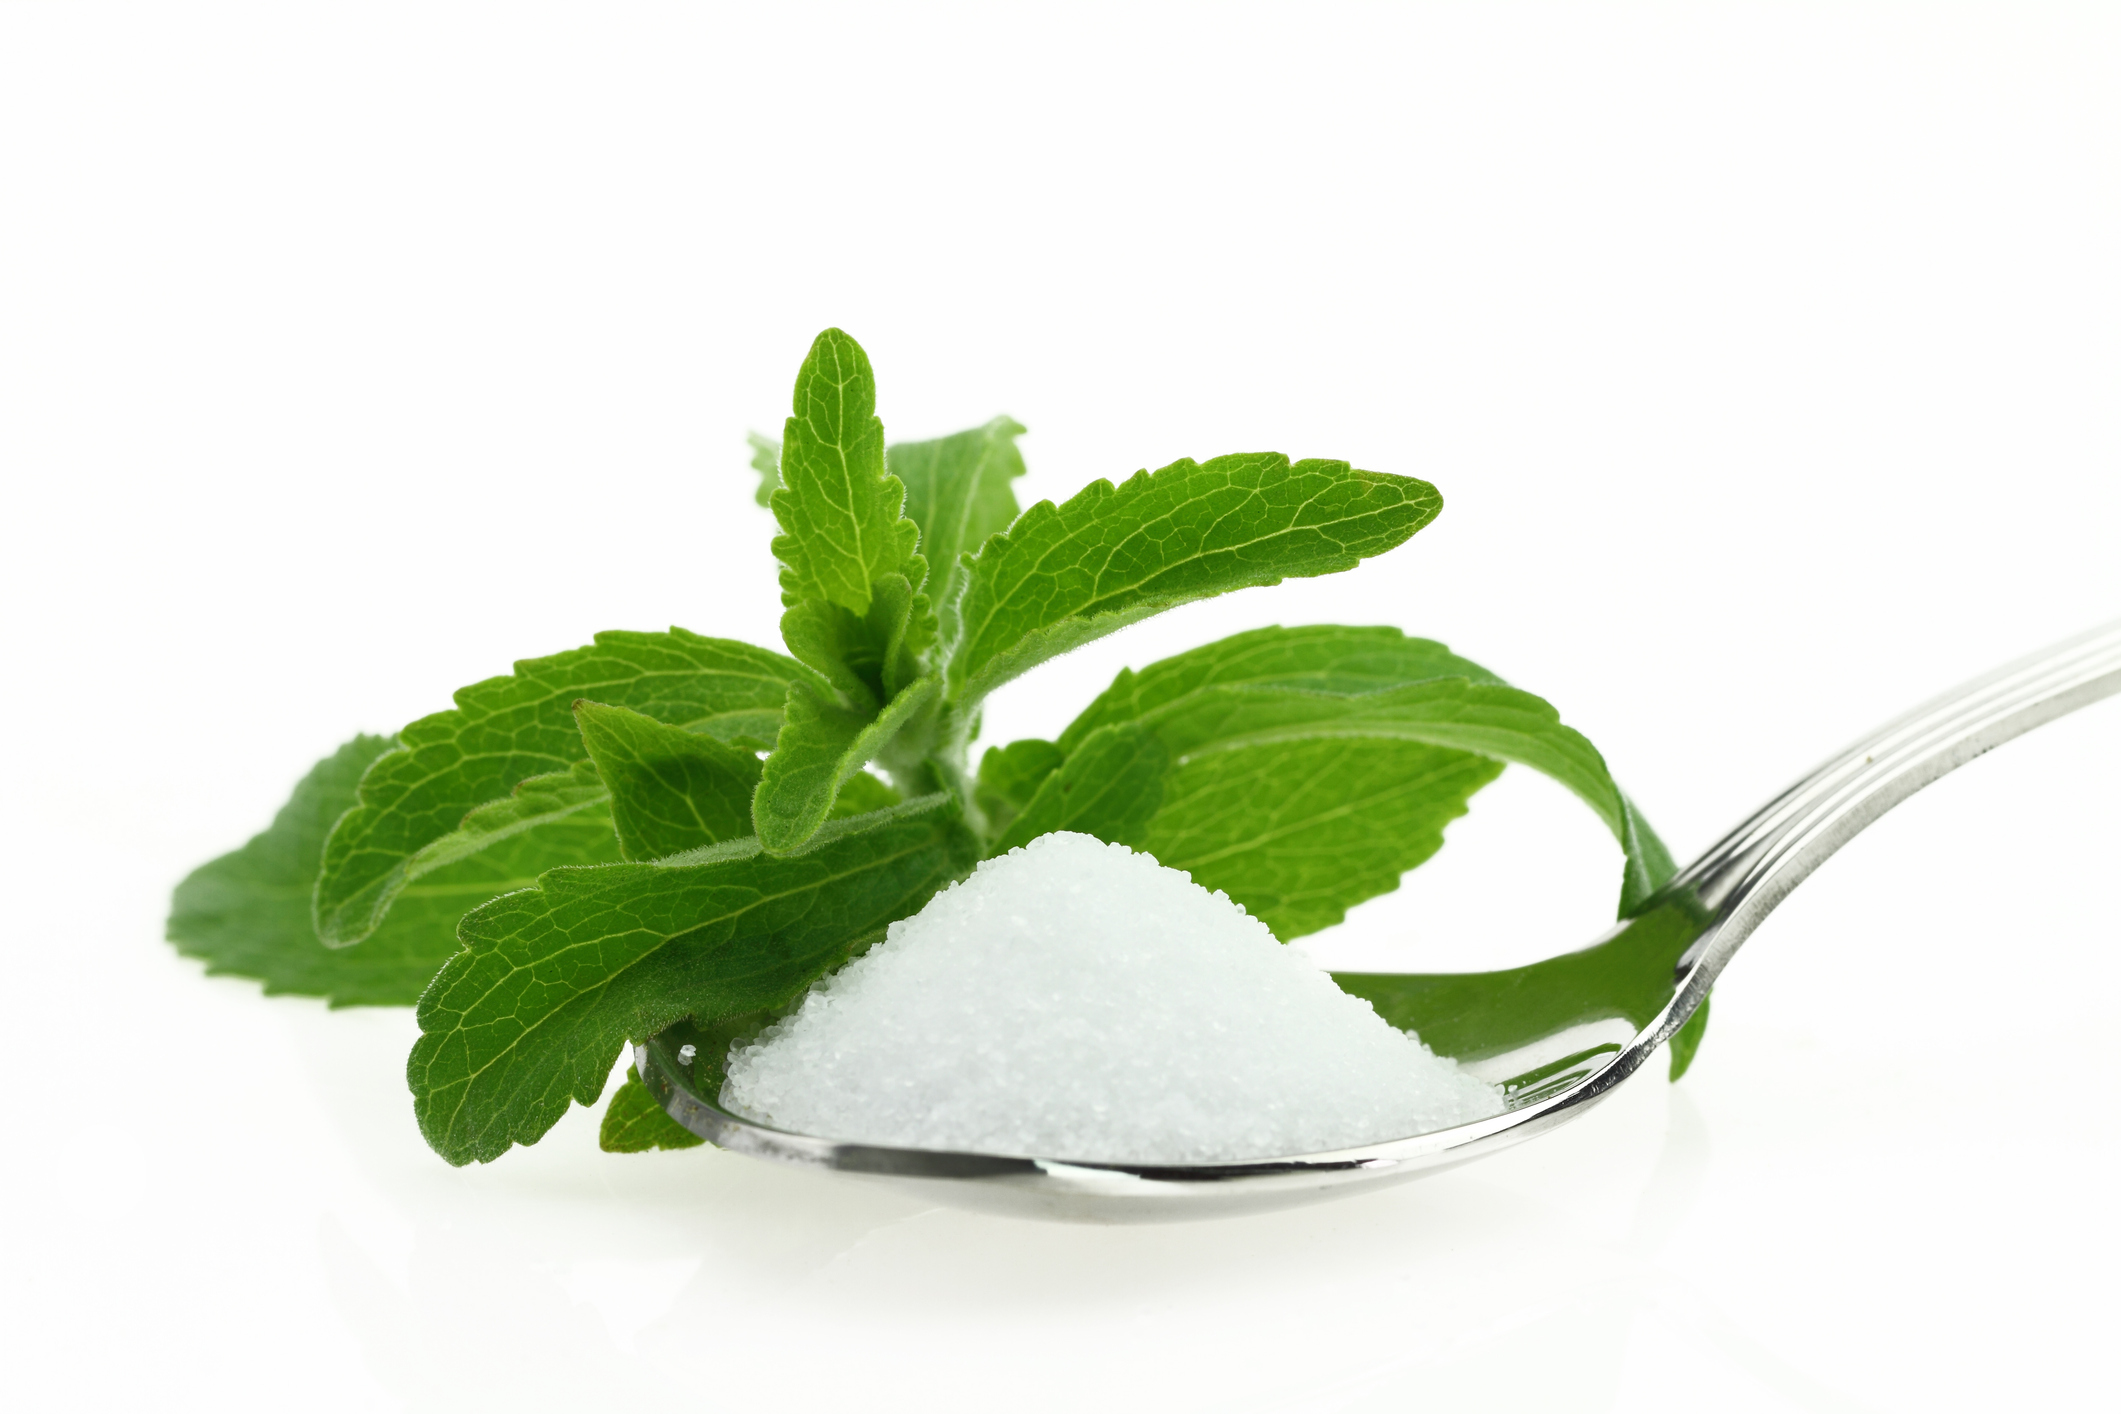 Natural Organic Sweeteners | Erythritol, Stevia, Inulin and Xylitol